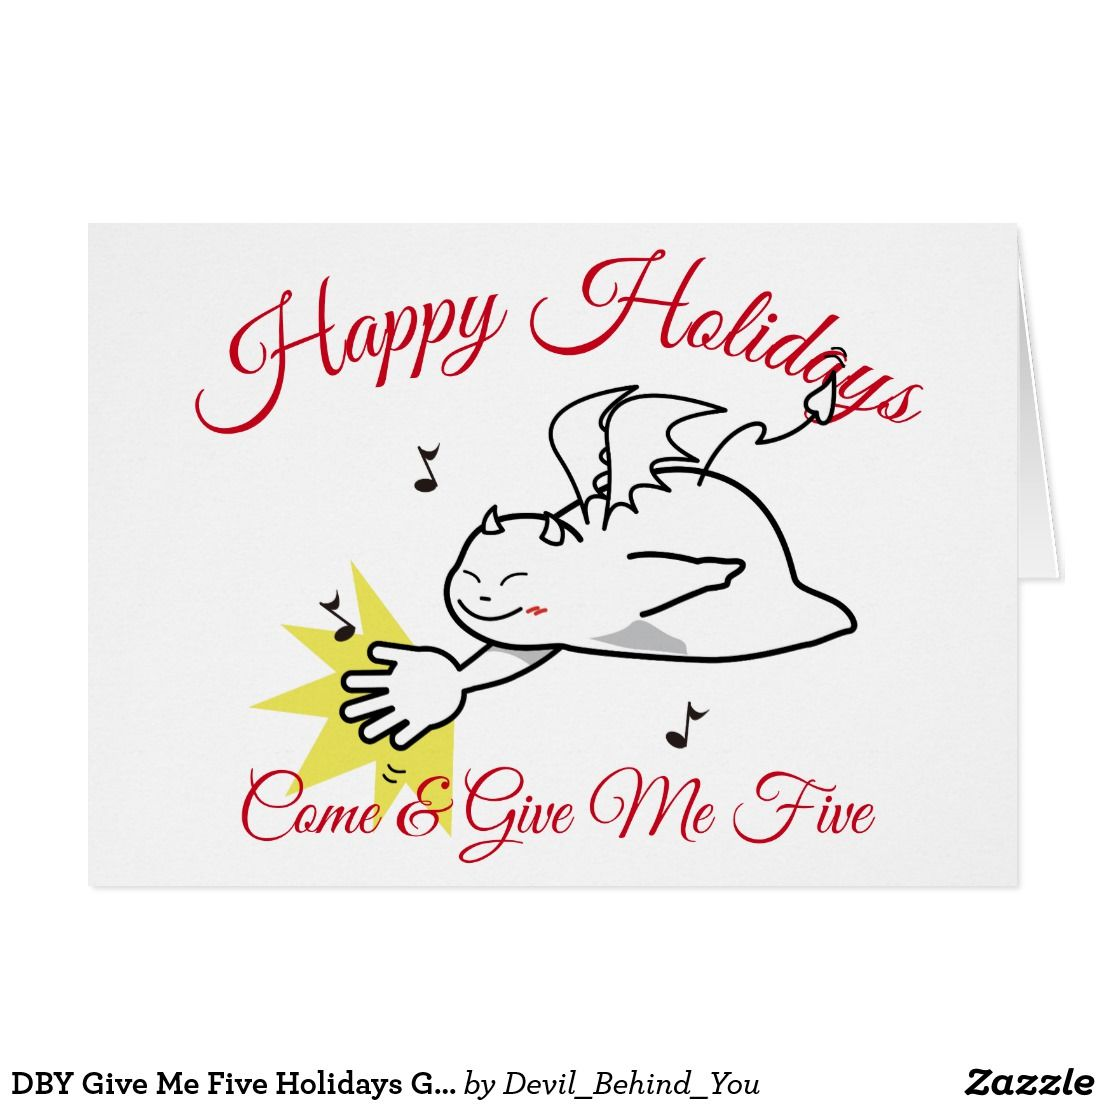 Dby Give Me Five Holidays Greetings Card Dby Miscellaneous